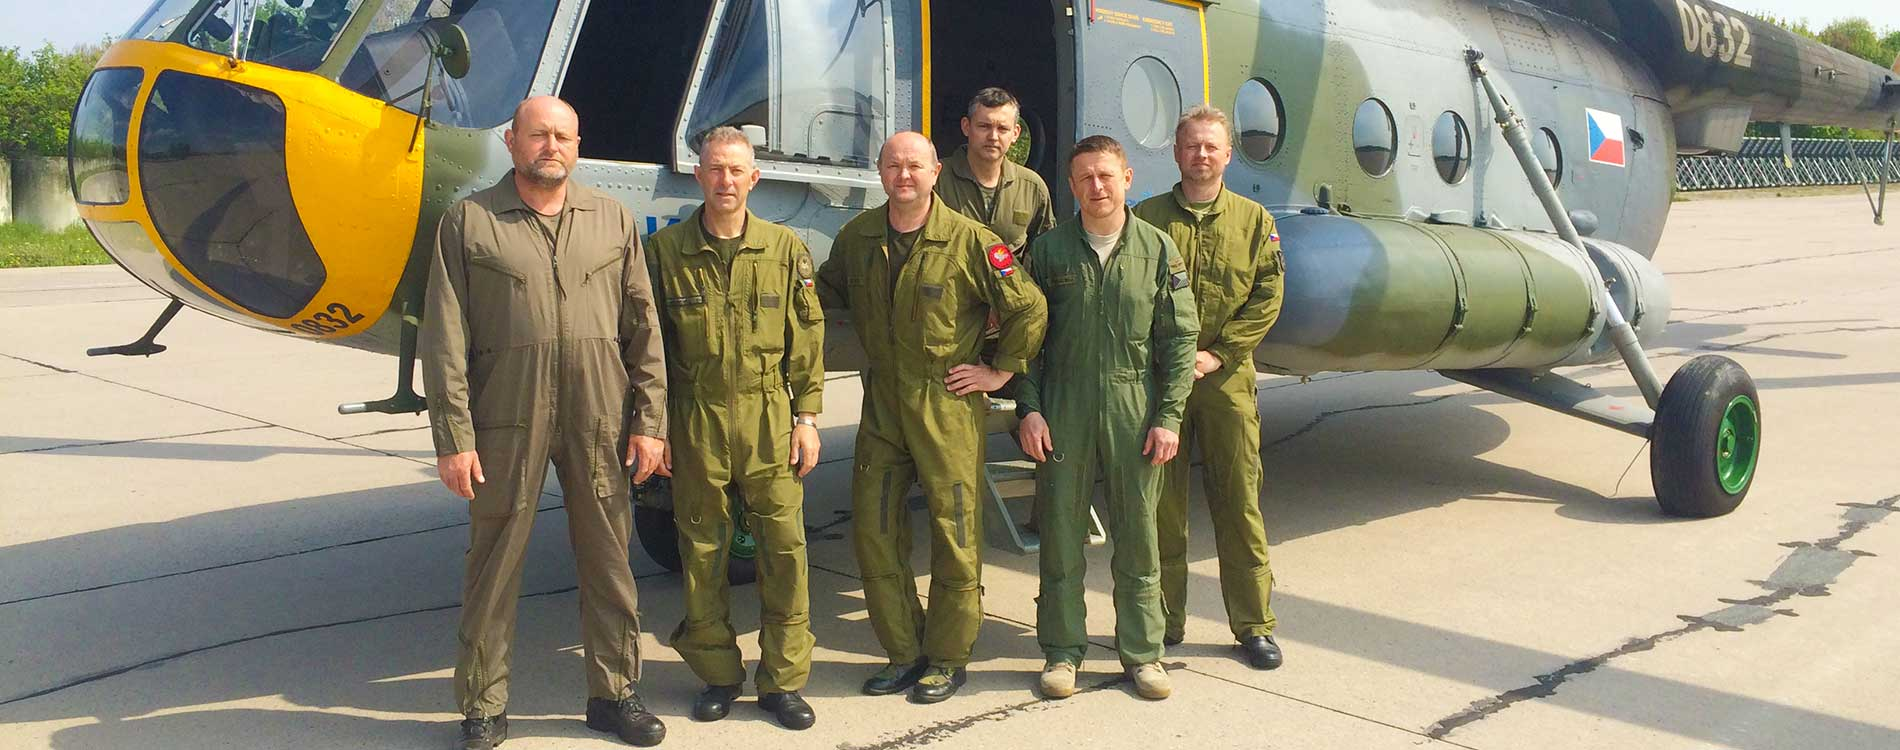 Instructors - Mi-17 Pilot Training